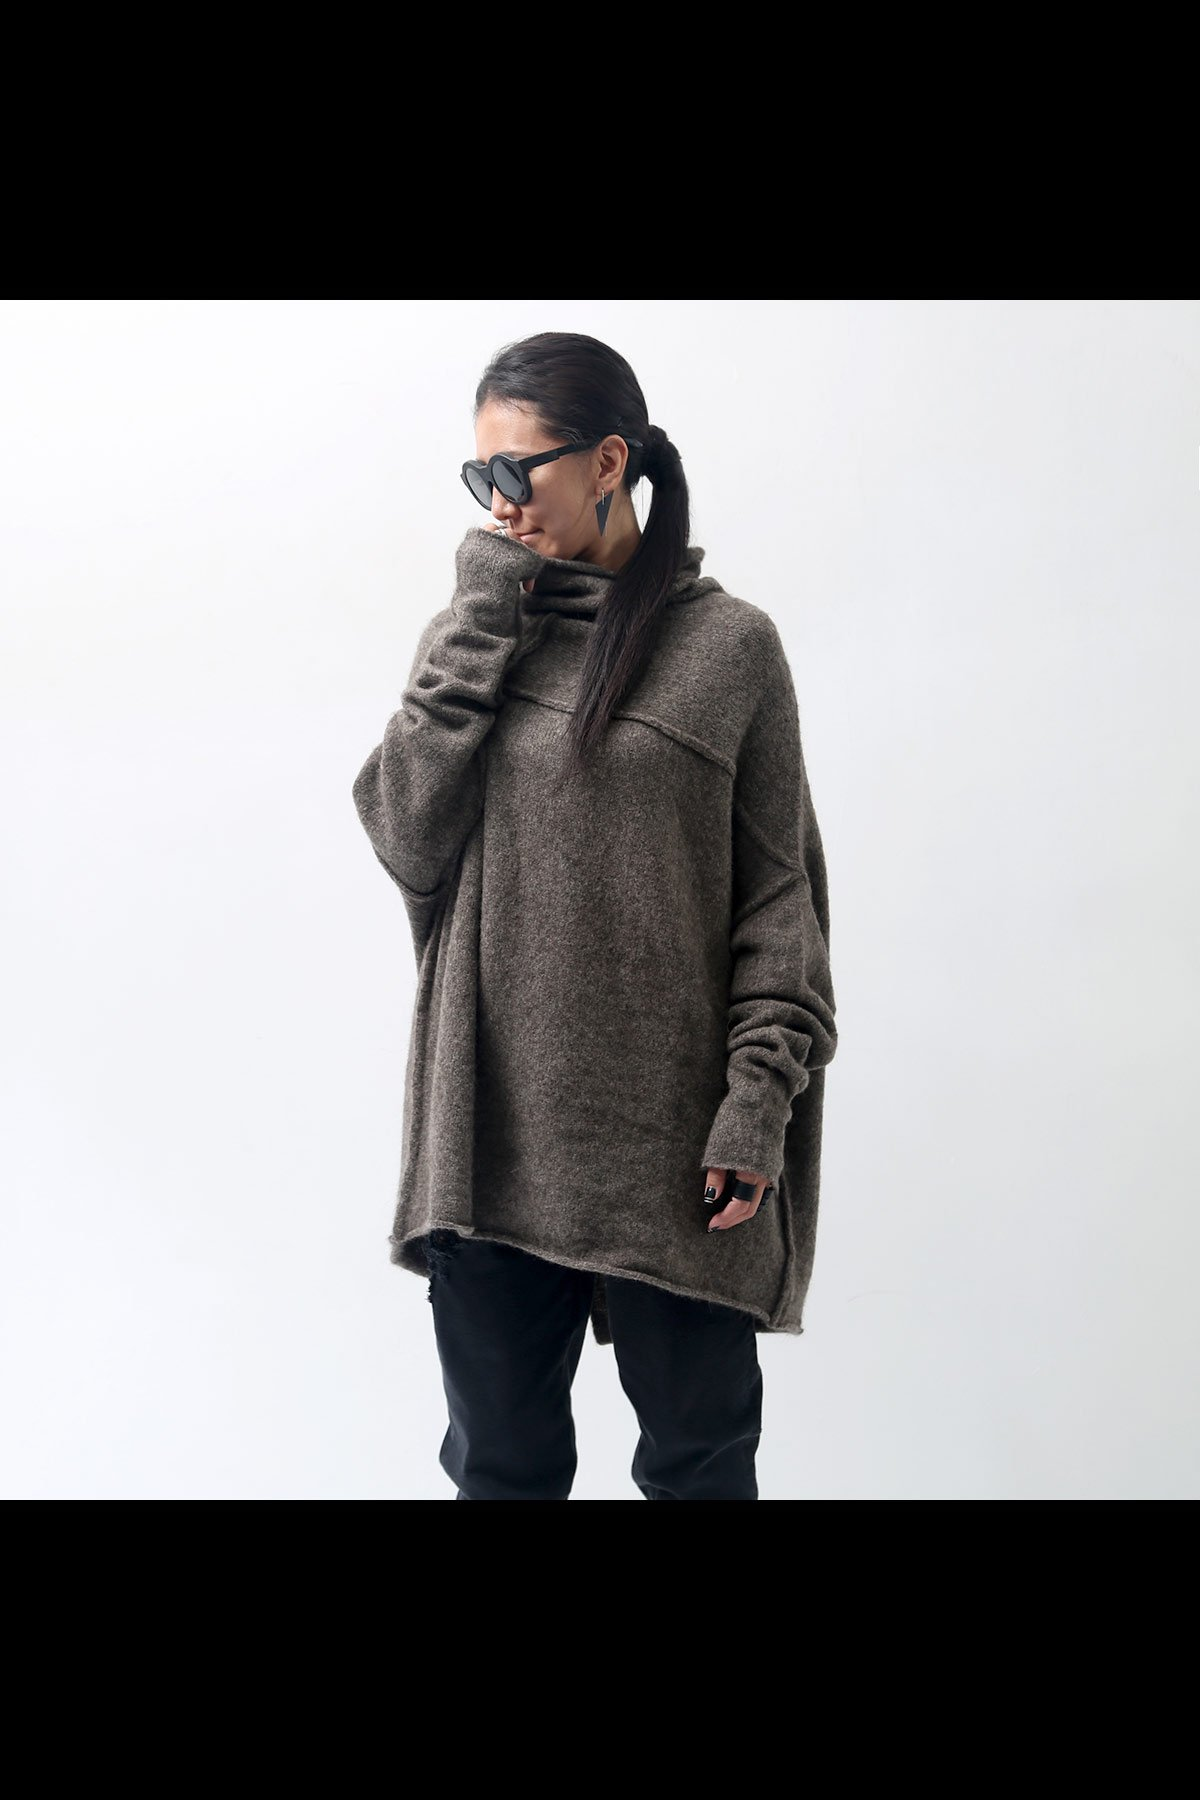 <img class='new_mark_img1' src='https://img.shop-pro.jp/img/new/icons8.gif' style='border:none;display:inline;margin:0px;padding:0px;width:auto;' />CASHMERE&BABY LAMA KNIT MID TOPS 132 0701_ANTHRA